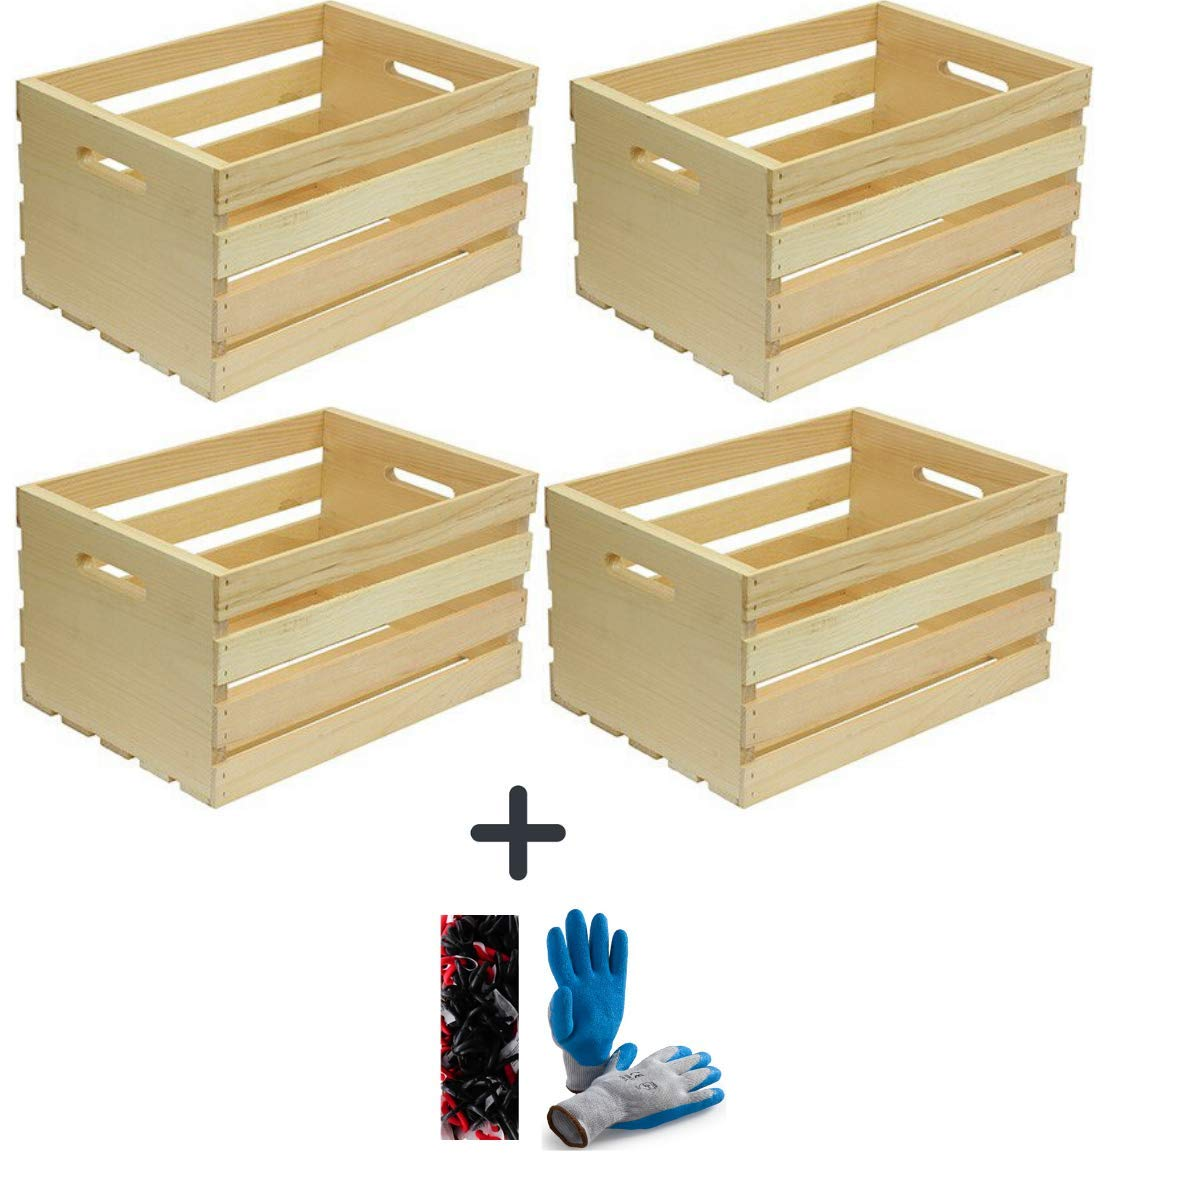 Set of 3 Houseworks 67140 18 Lx12.5 Wx9.5 H Large Crates /& Pallet Wood Crate